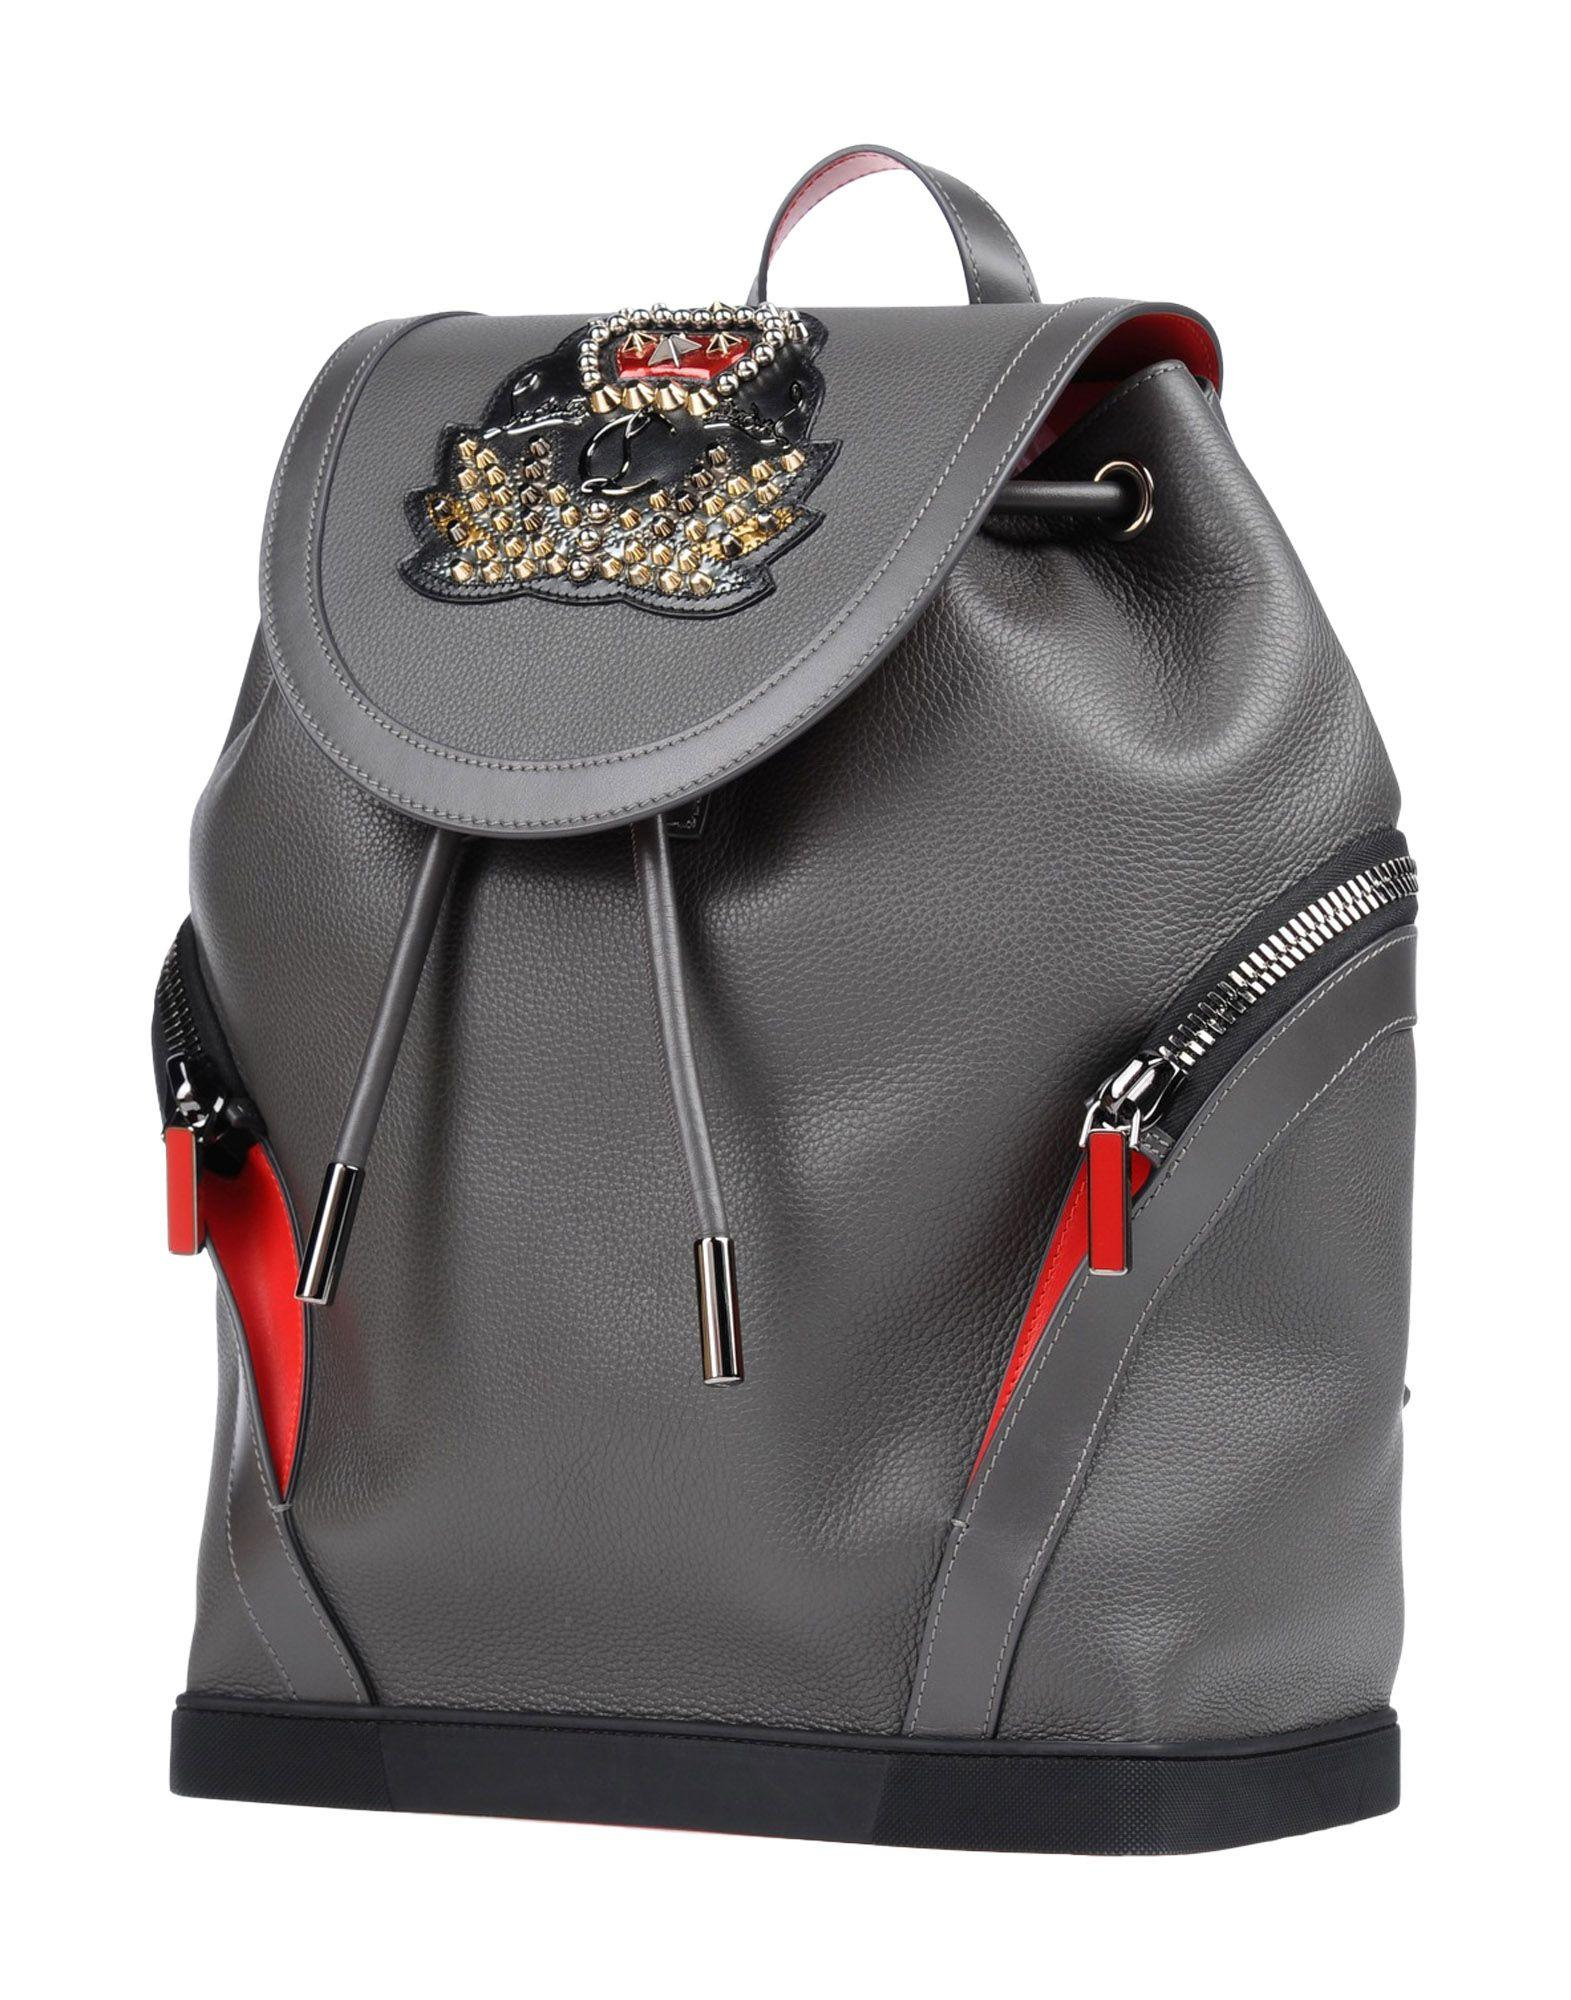 reputable site cd597 88283 Christian Louboutin Backpacks & Fanny Packs In Lead | ModeSens